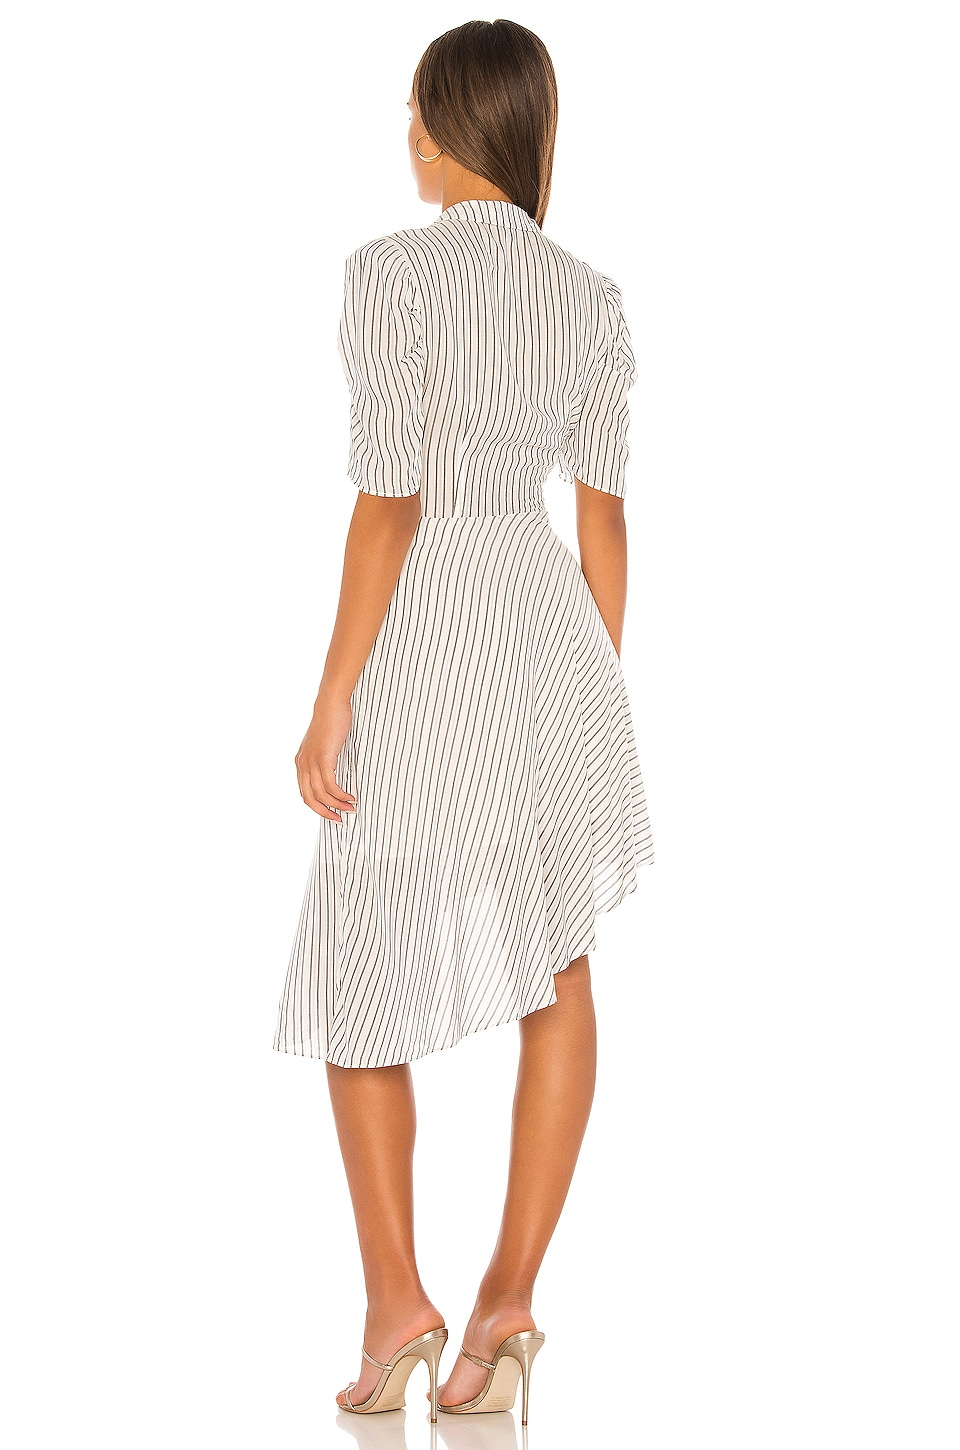 Tie Front Striped Dress, view 3, click to view large image.